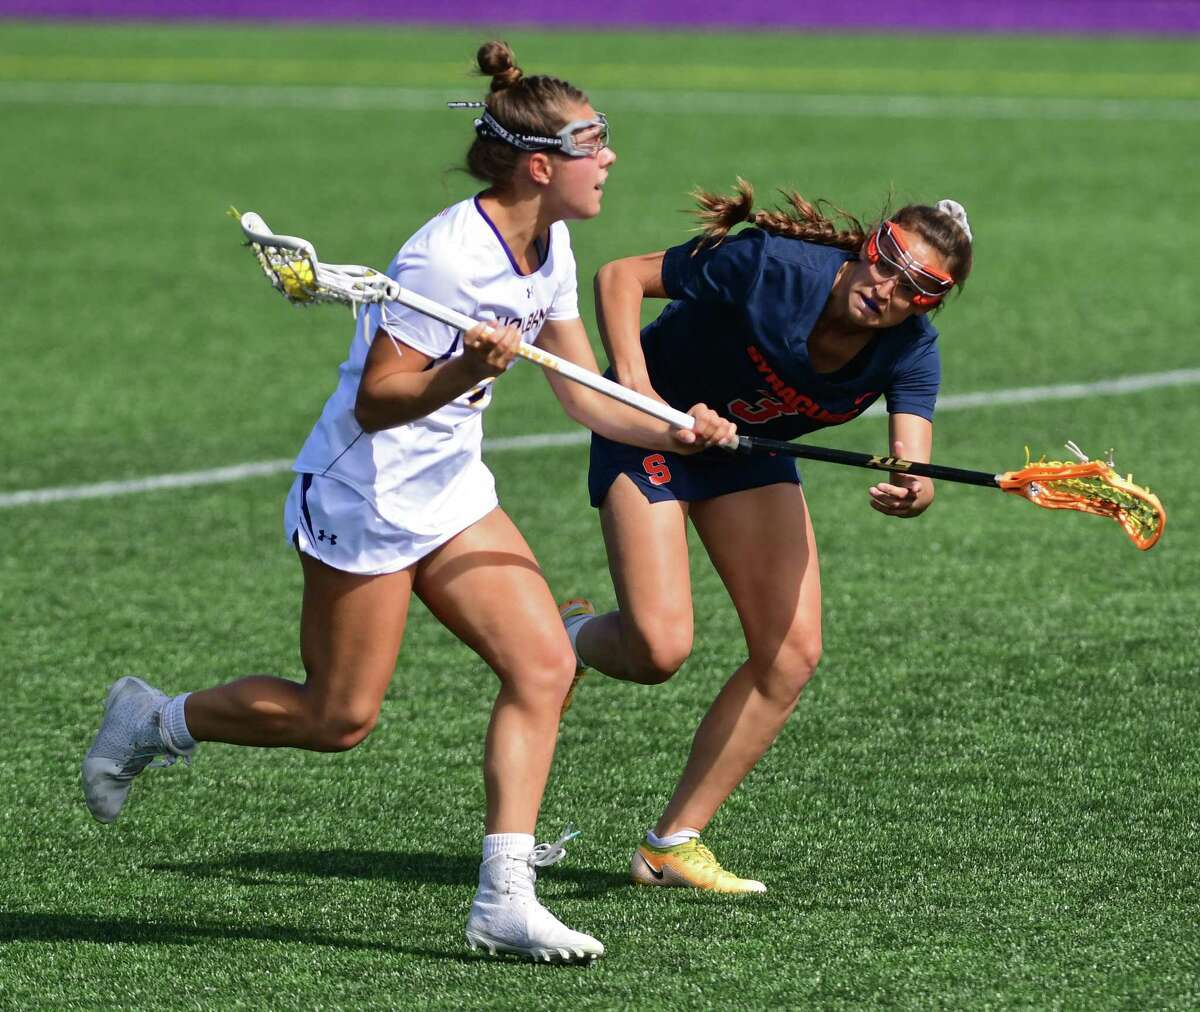 UAlbany's Kyla Zapolski, left, said the Great Danes will not overlook Vermont despite a possible rematch looming with Stony Brook. (Lori Van Buren/Times Union)